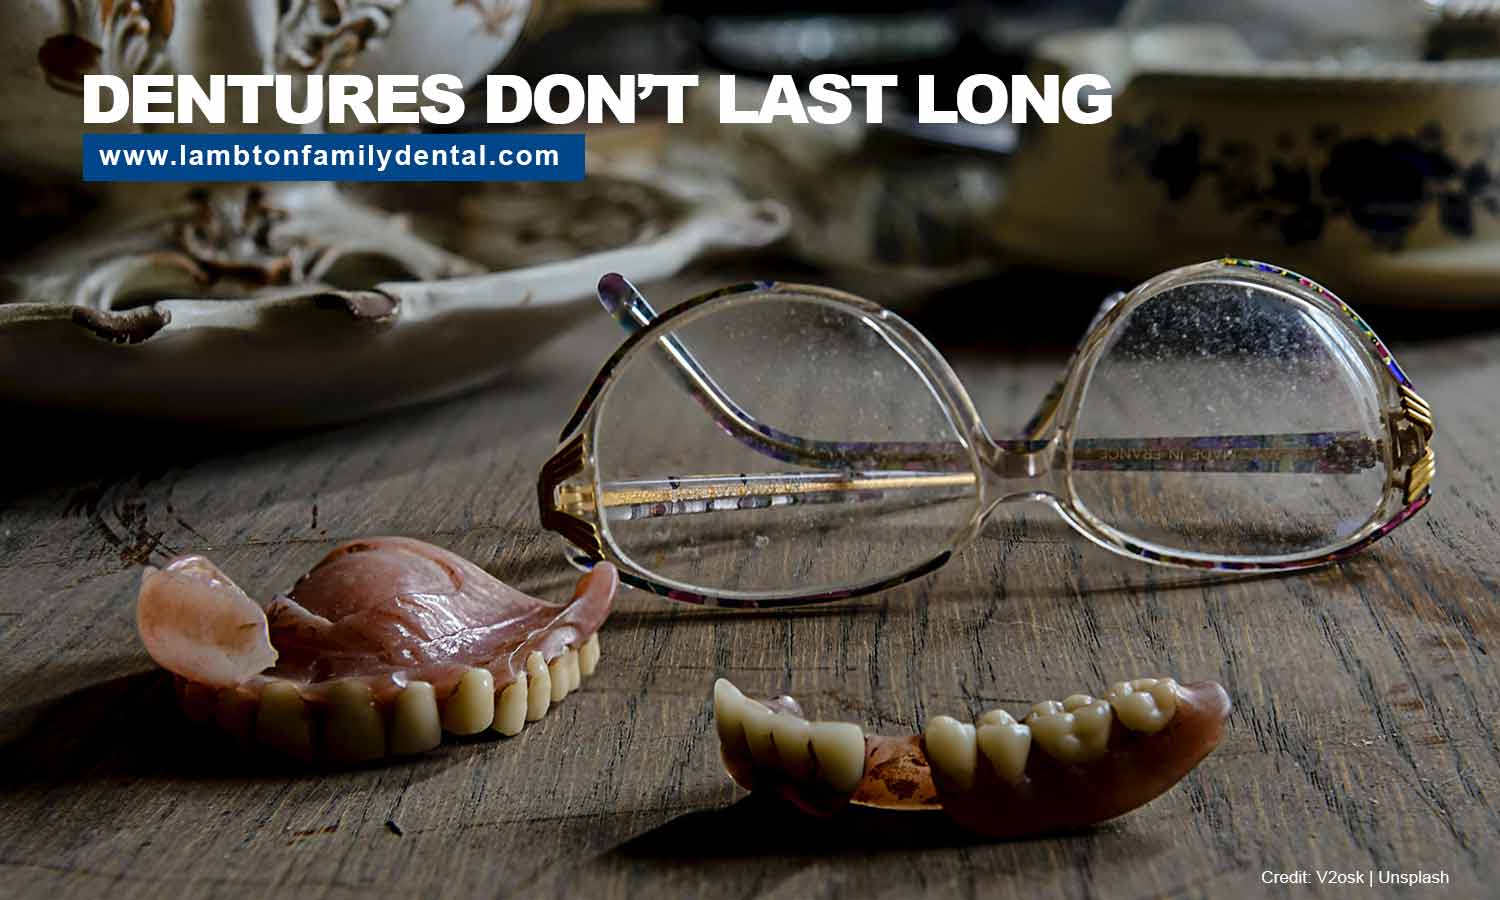 Dentures don't last long